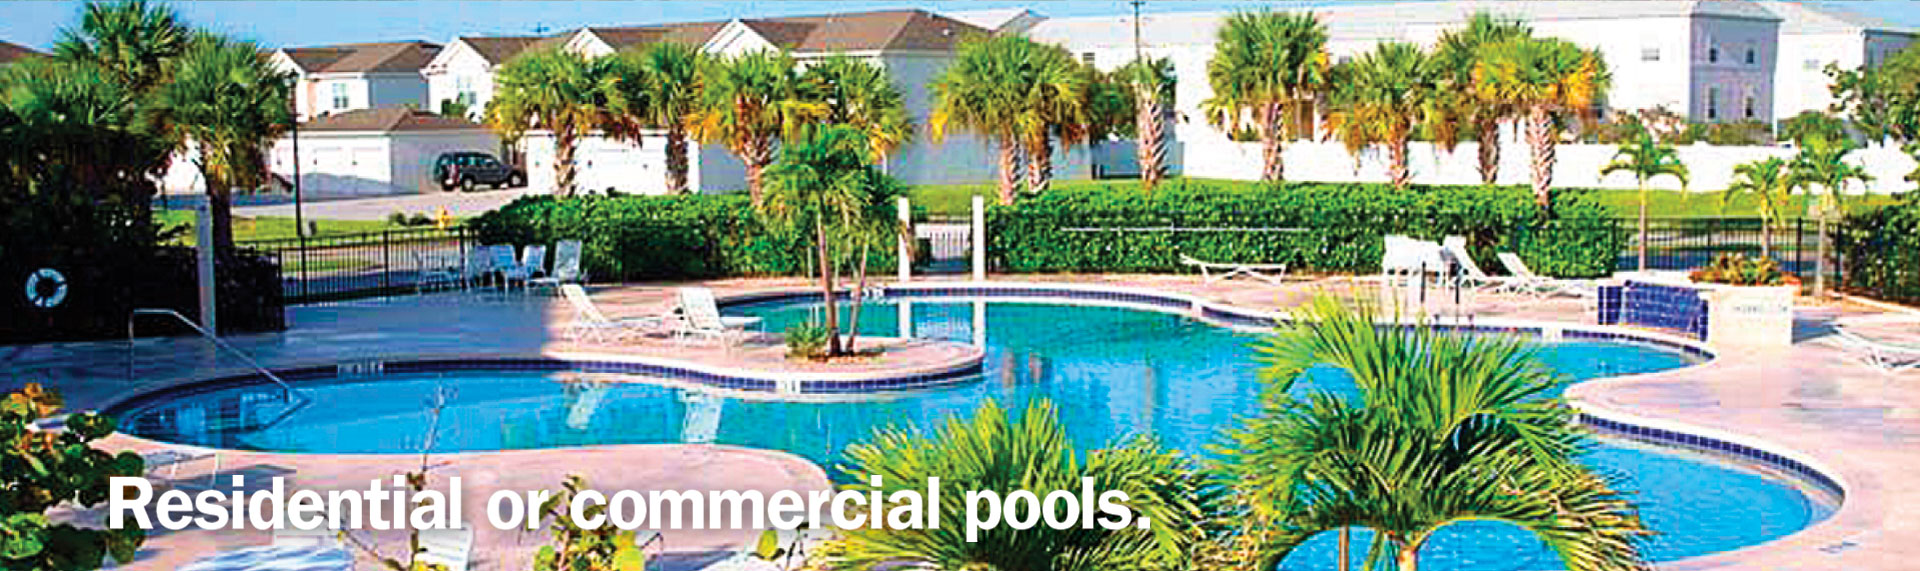 Blue marlin pools let us build a dream pool for you for Swimming pool renovation costs